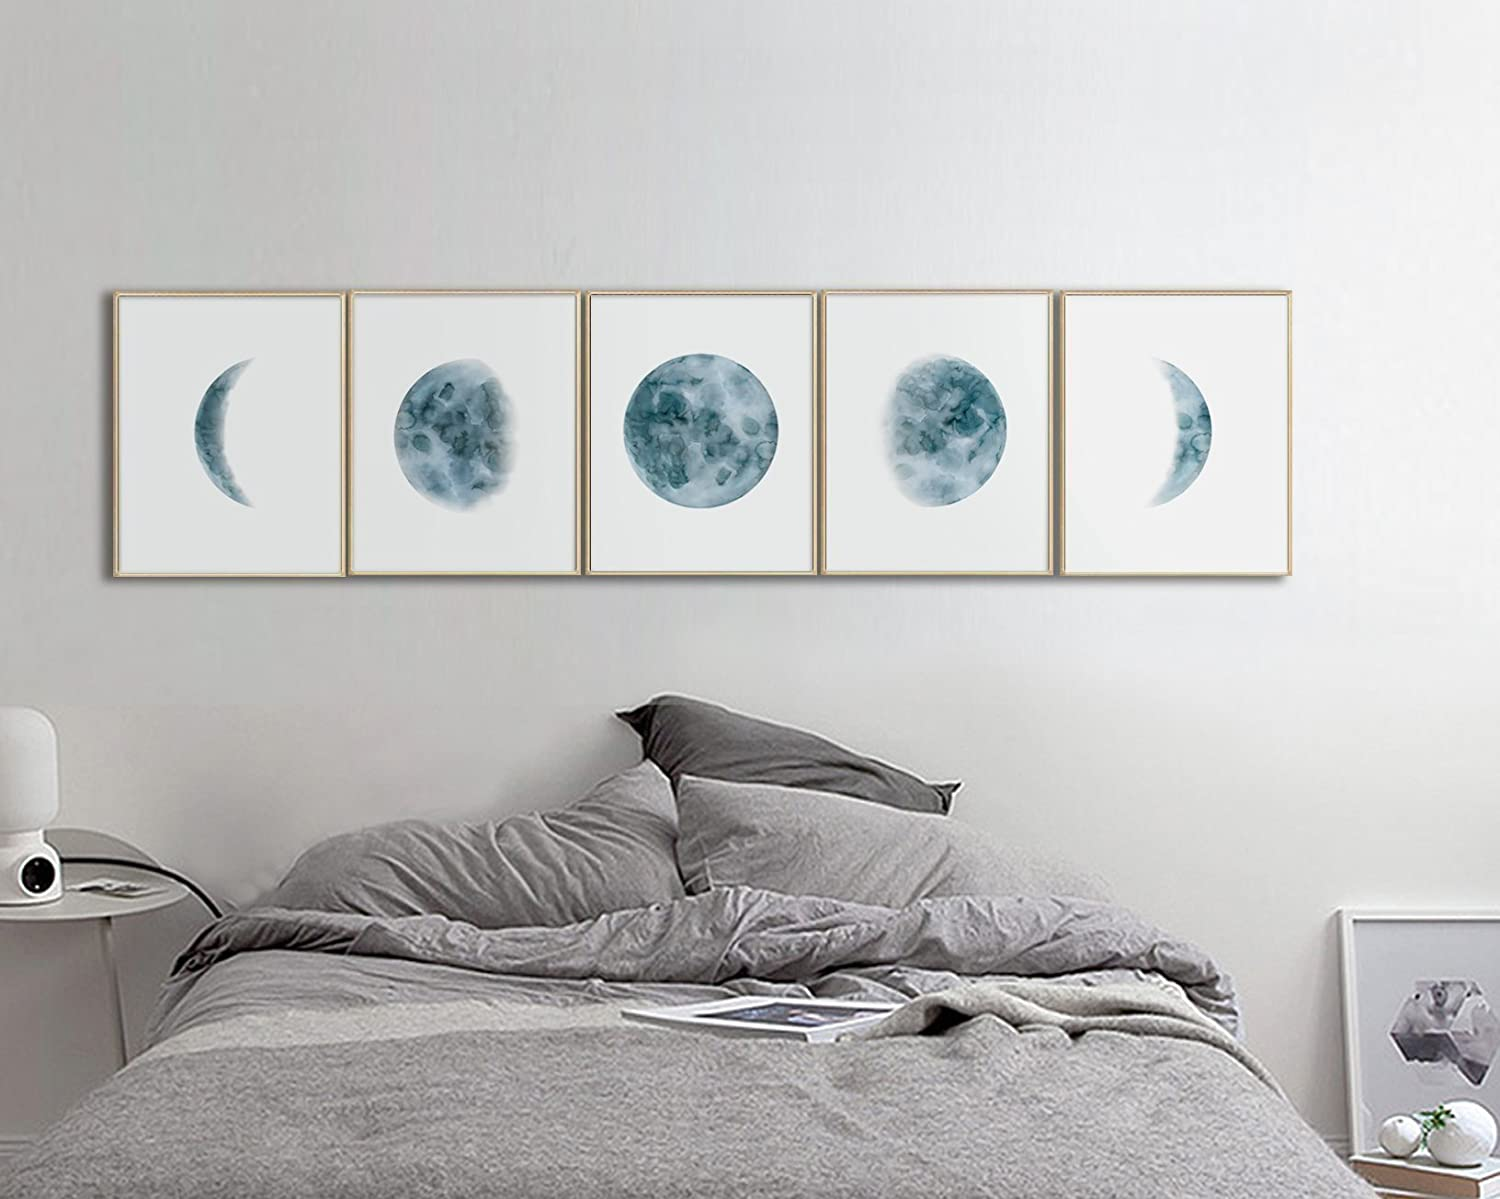 Pleasing Moon Phases Wall Art Print Bedroom Wall Art Bedroom Wall Decor Moon Phases Prints Set Indigo Blue Moon Phases Watercolor Prints Download Free Architecture Designs Itiscsunscenecom